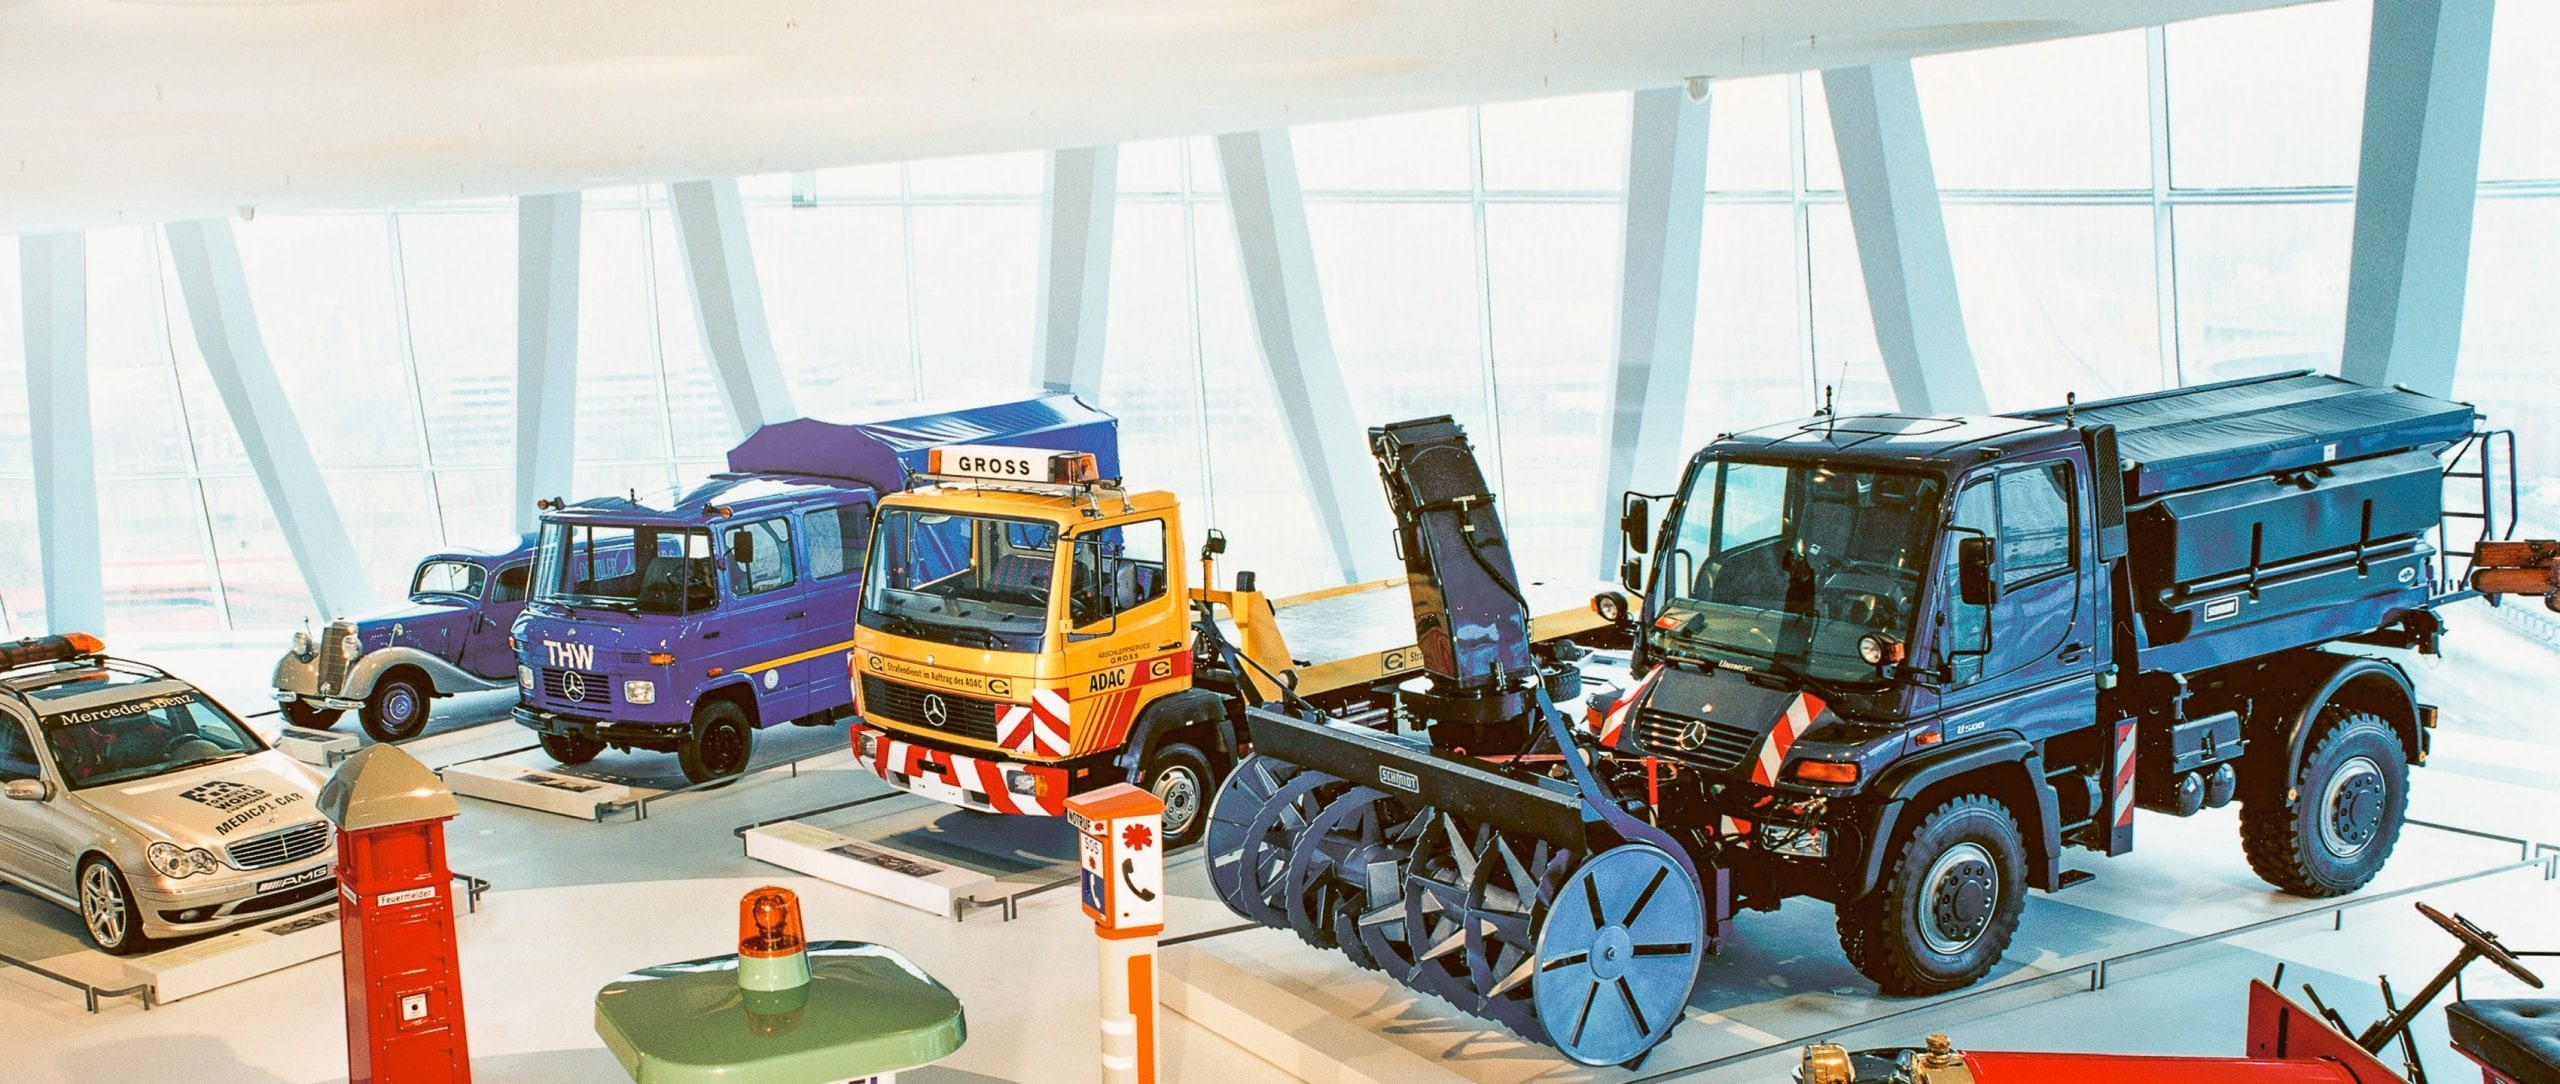 Mercedes-Benz Unimog U 500 with snow blower in the Mercedes-Benz Museum, Collection Room 3: Gallery of Helpers.